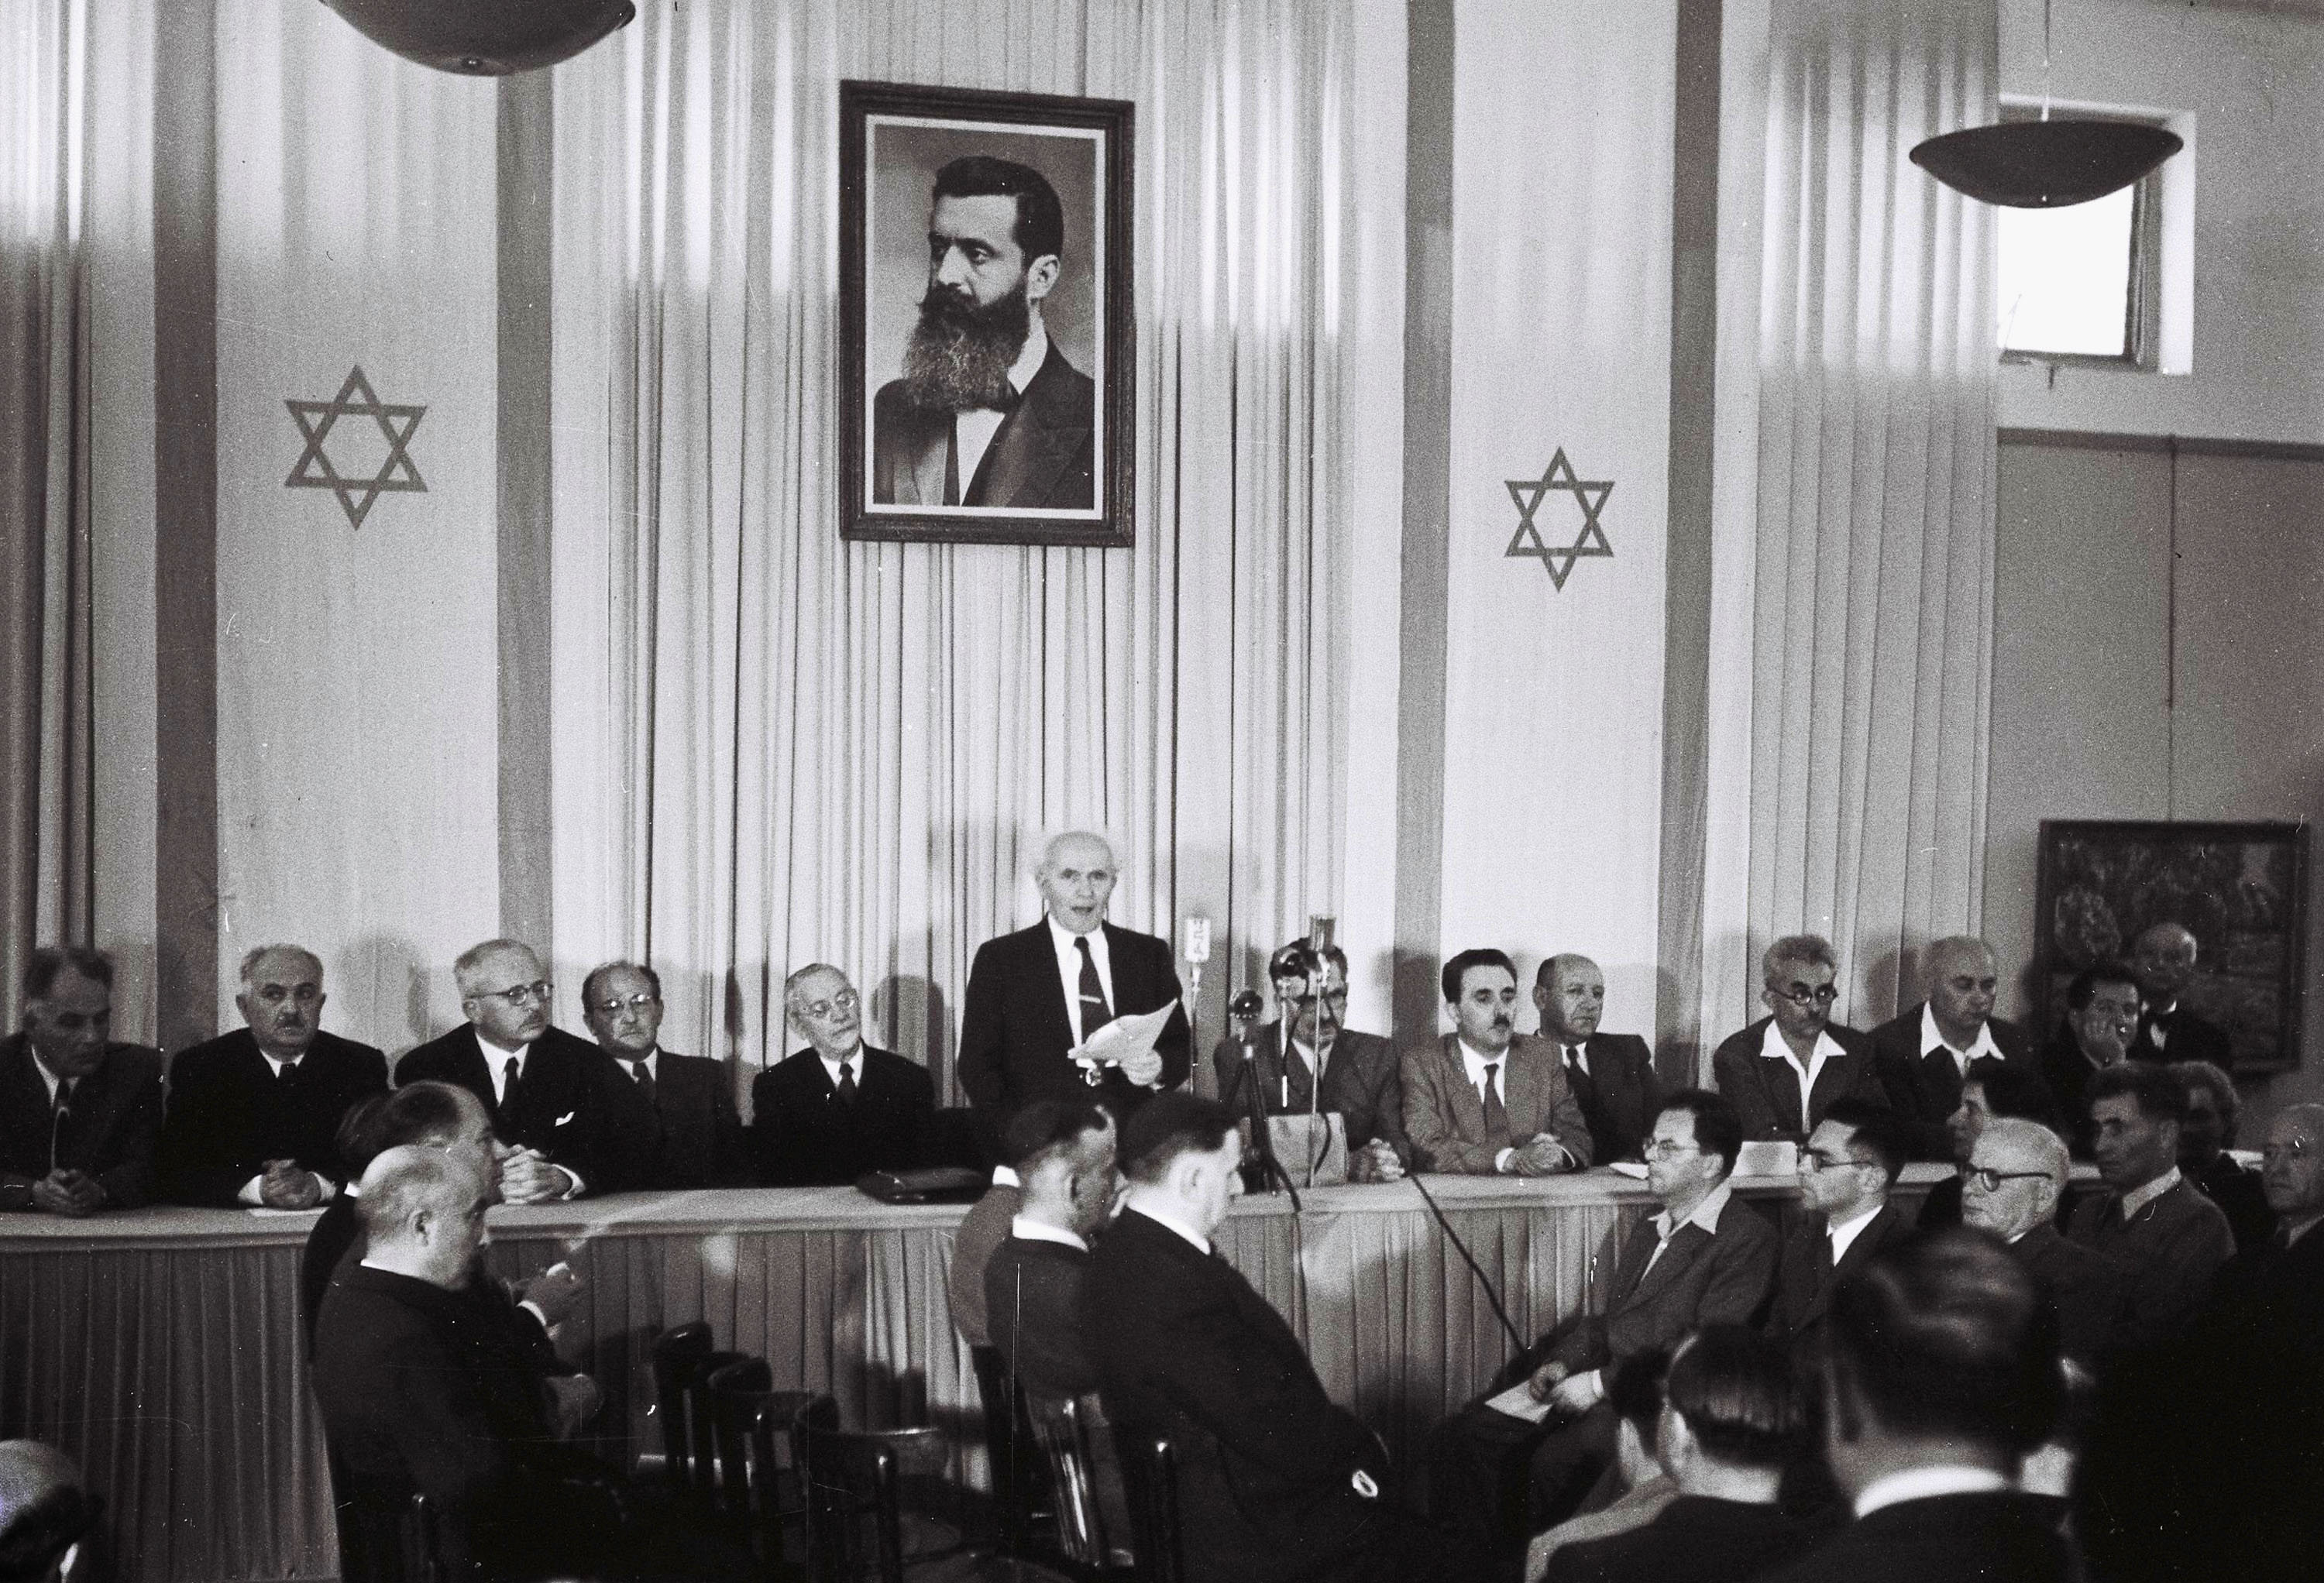 David Ben Gurion (First Prime Minister of Israel) publicly pronouncing the Declaration of the Establishment of the State of Israel, May 14, 1948